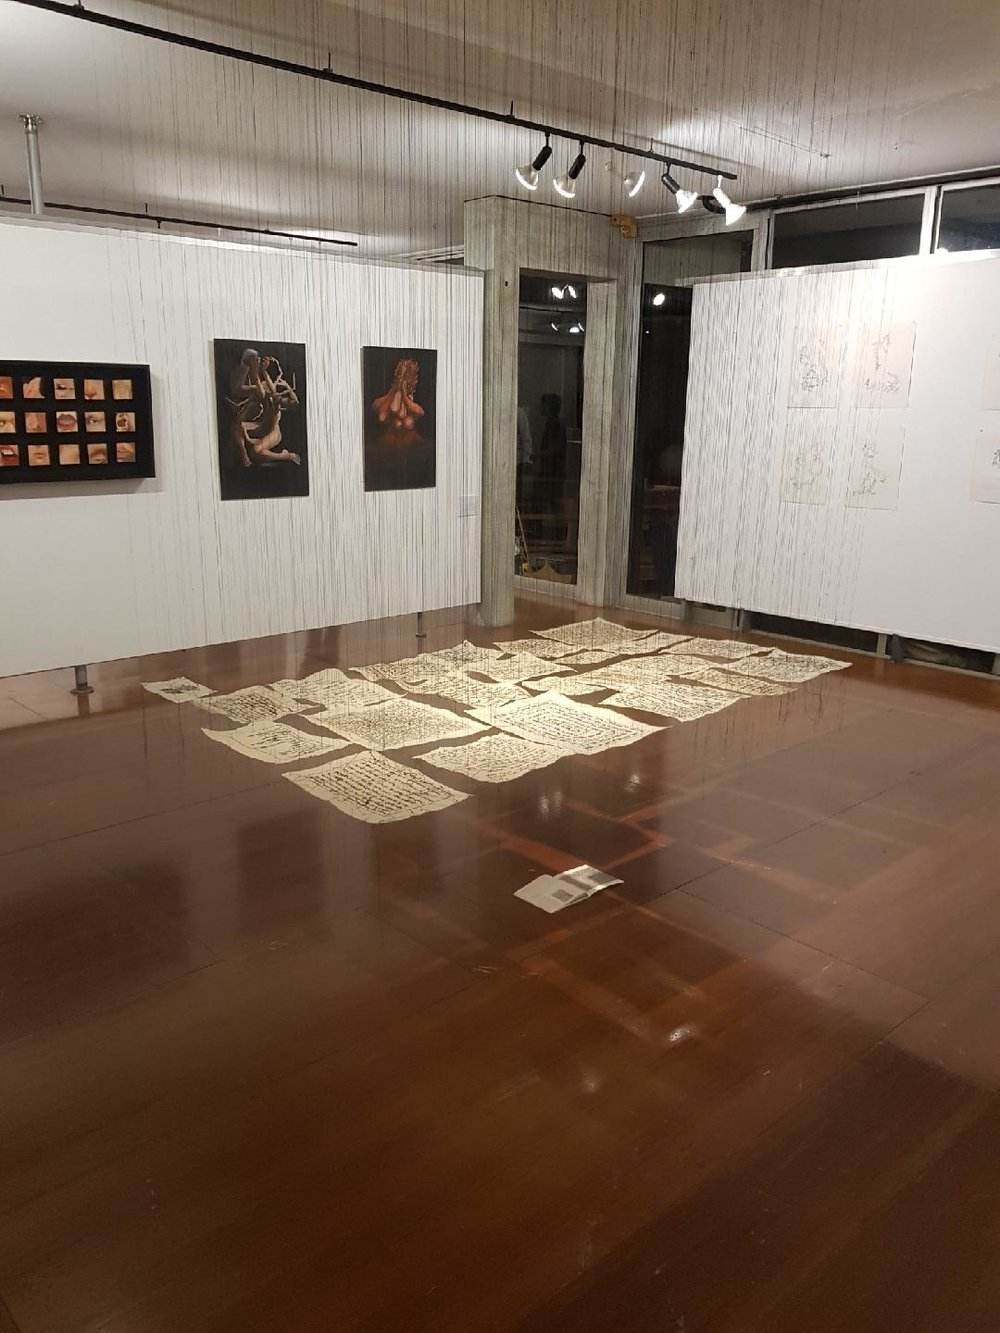 Mindfield: The Sewing Seeds     FAM17 (Cullity Gallery, University of Western Australia).